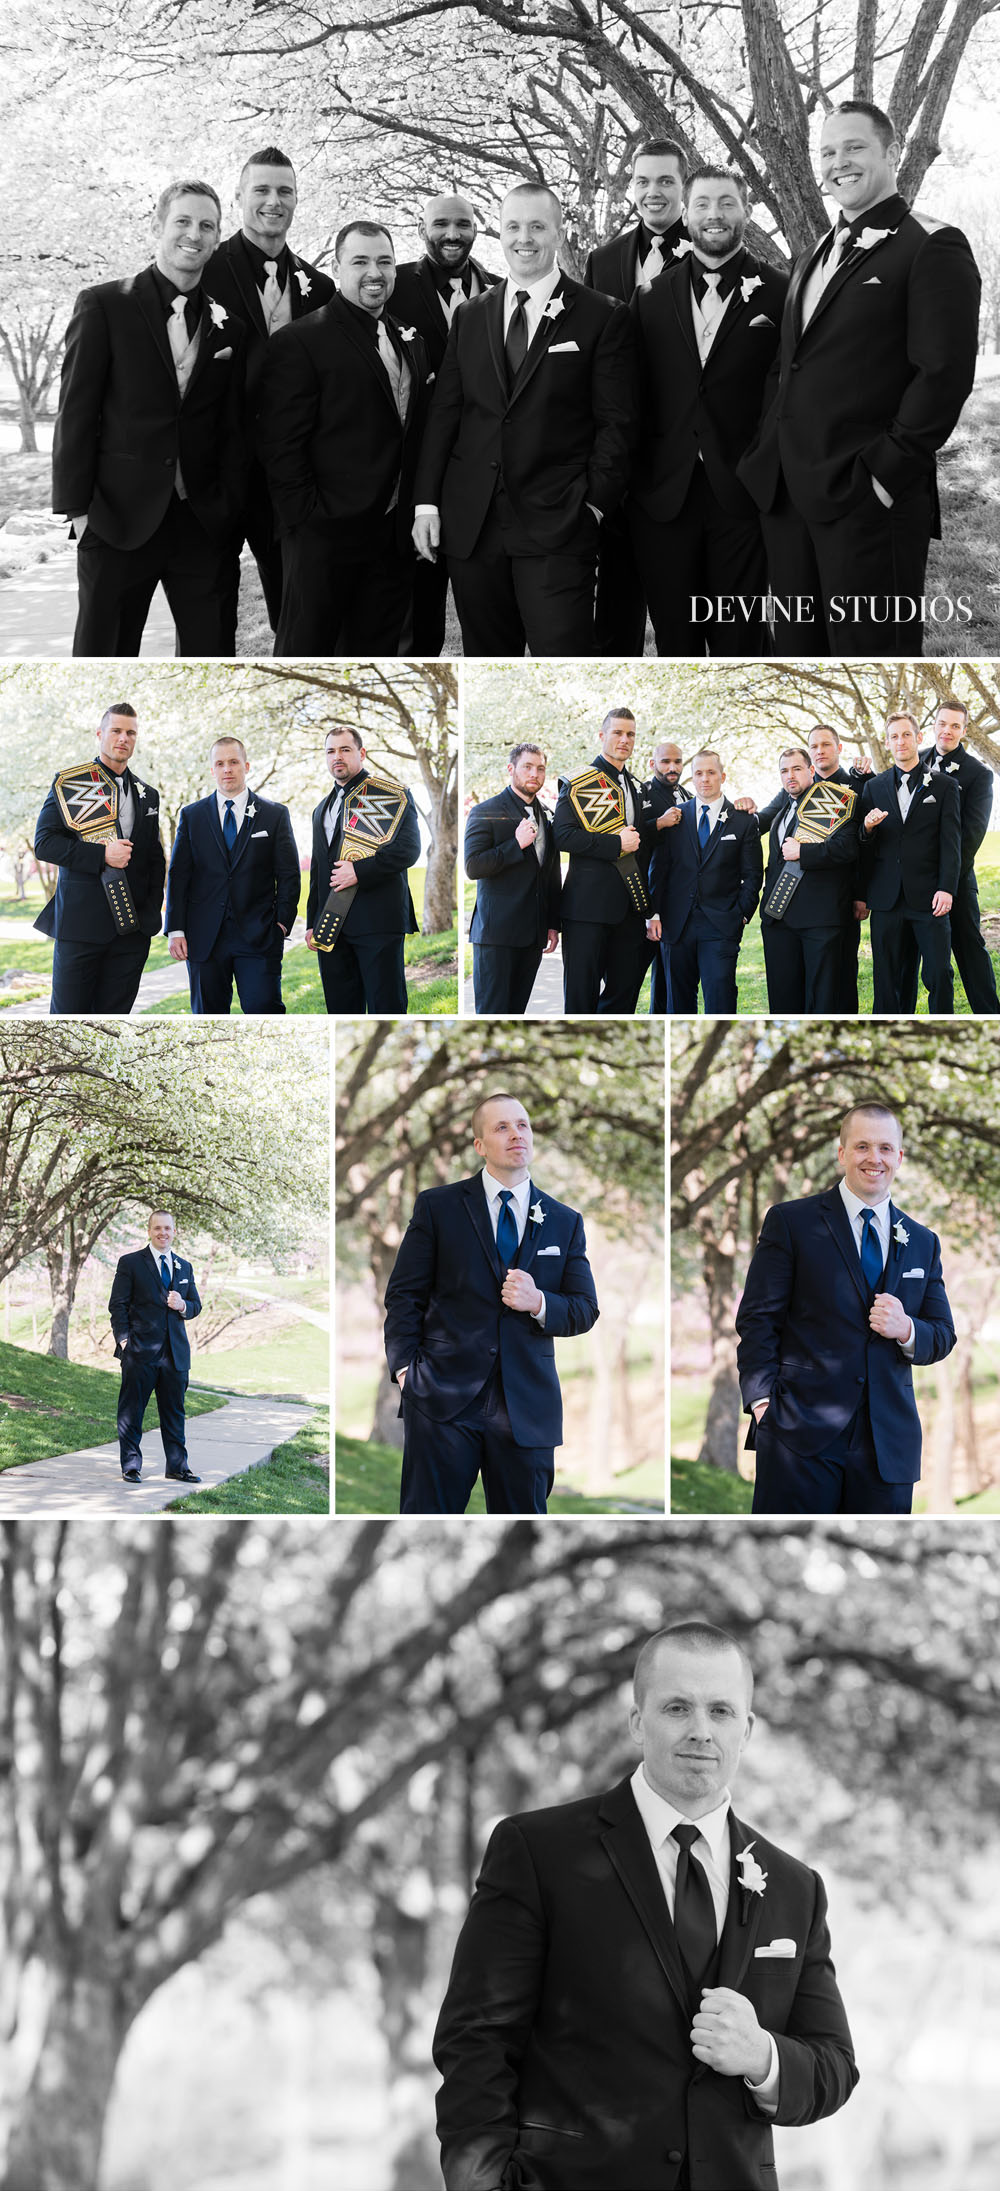 http://devinestudios.com/boudoir/wp-content/uploads/2016/05/10-839-post/Kansas-City-Wedding-Photography-Town-Pavilion-photojournalist-photographers7.jpg